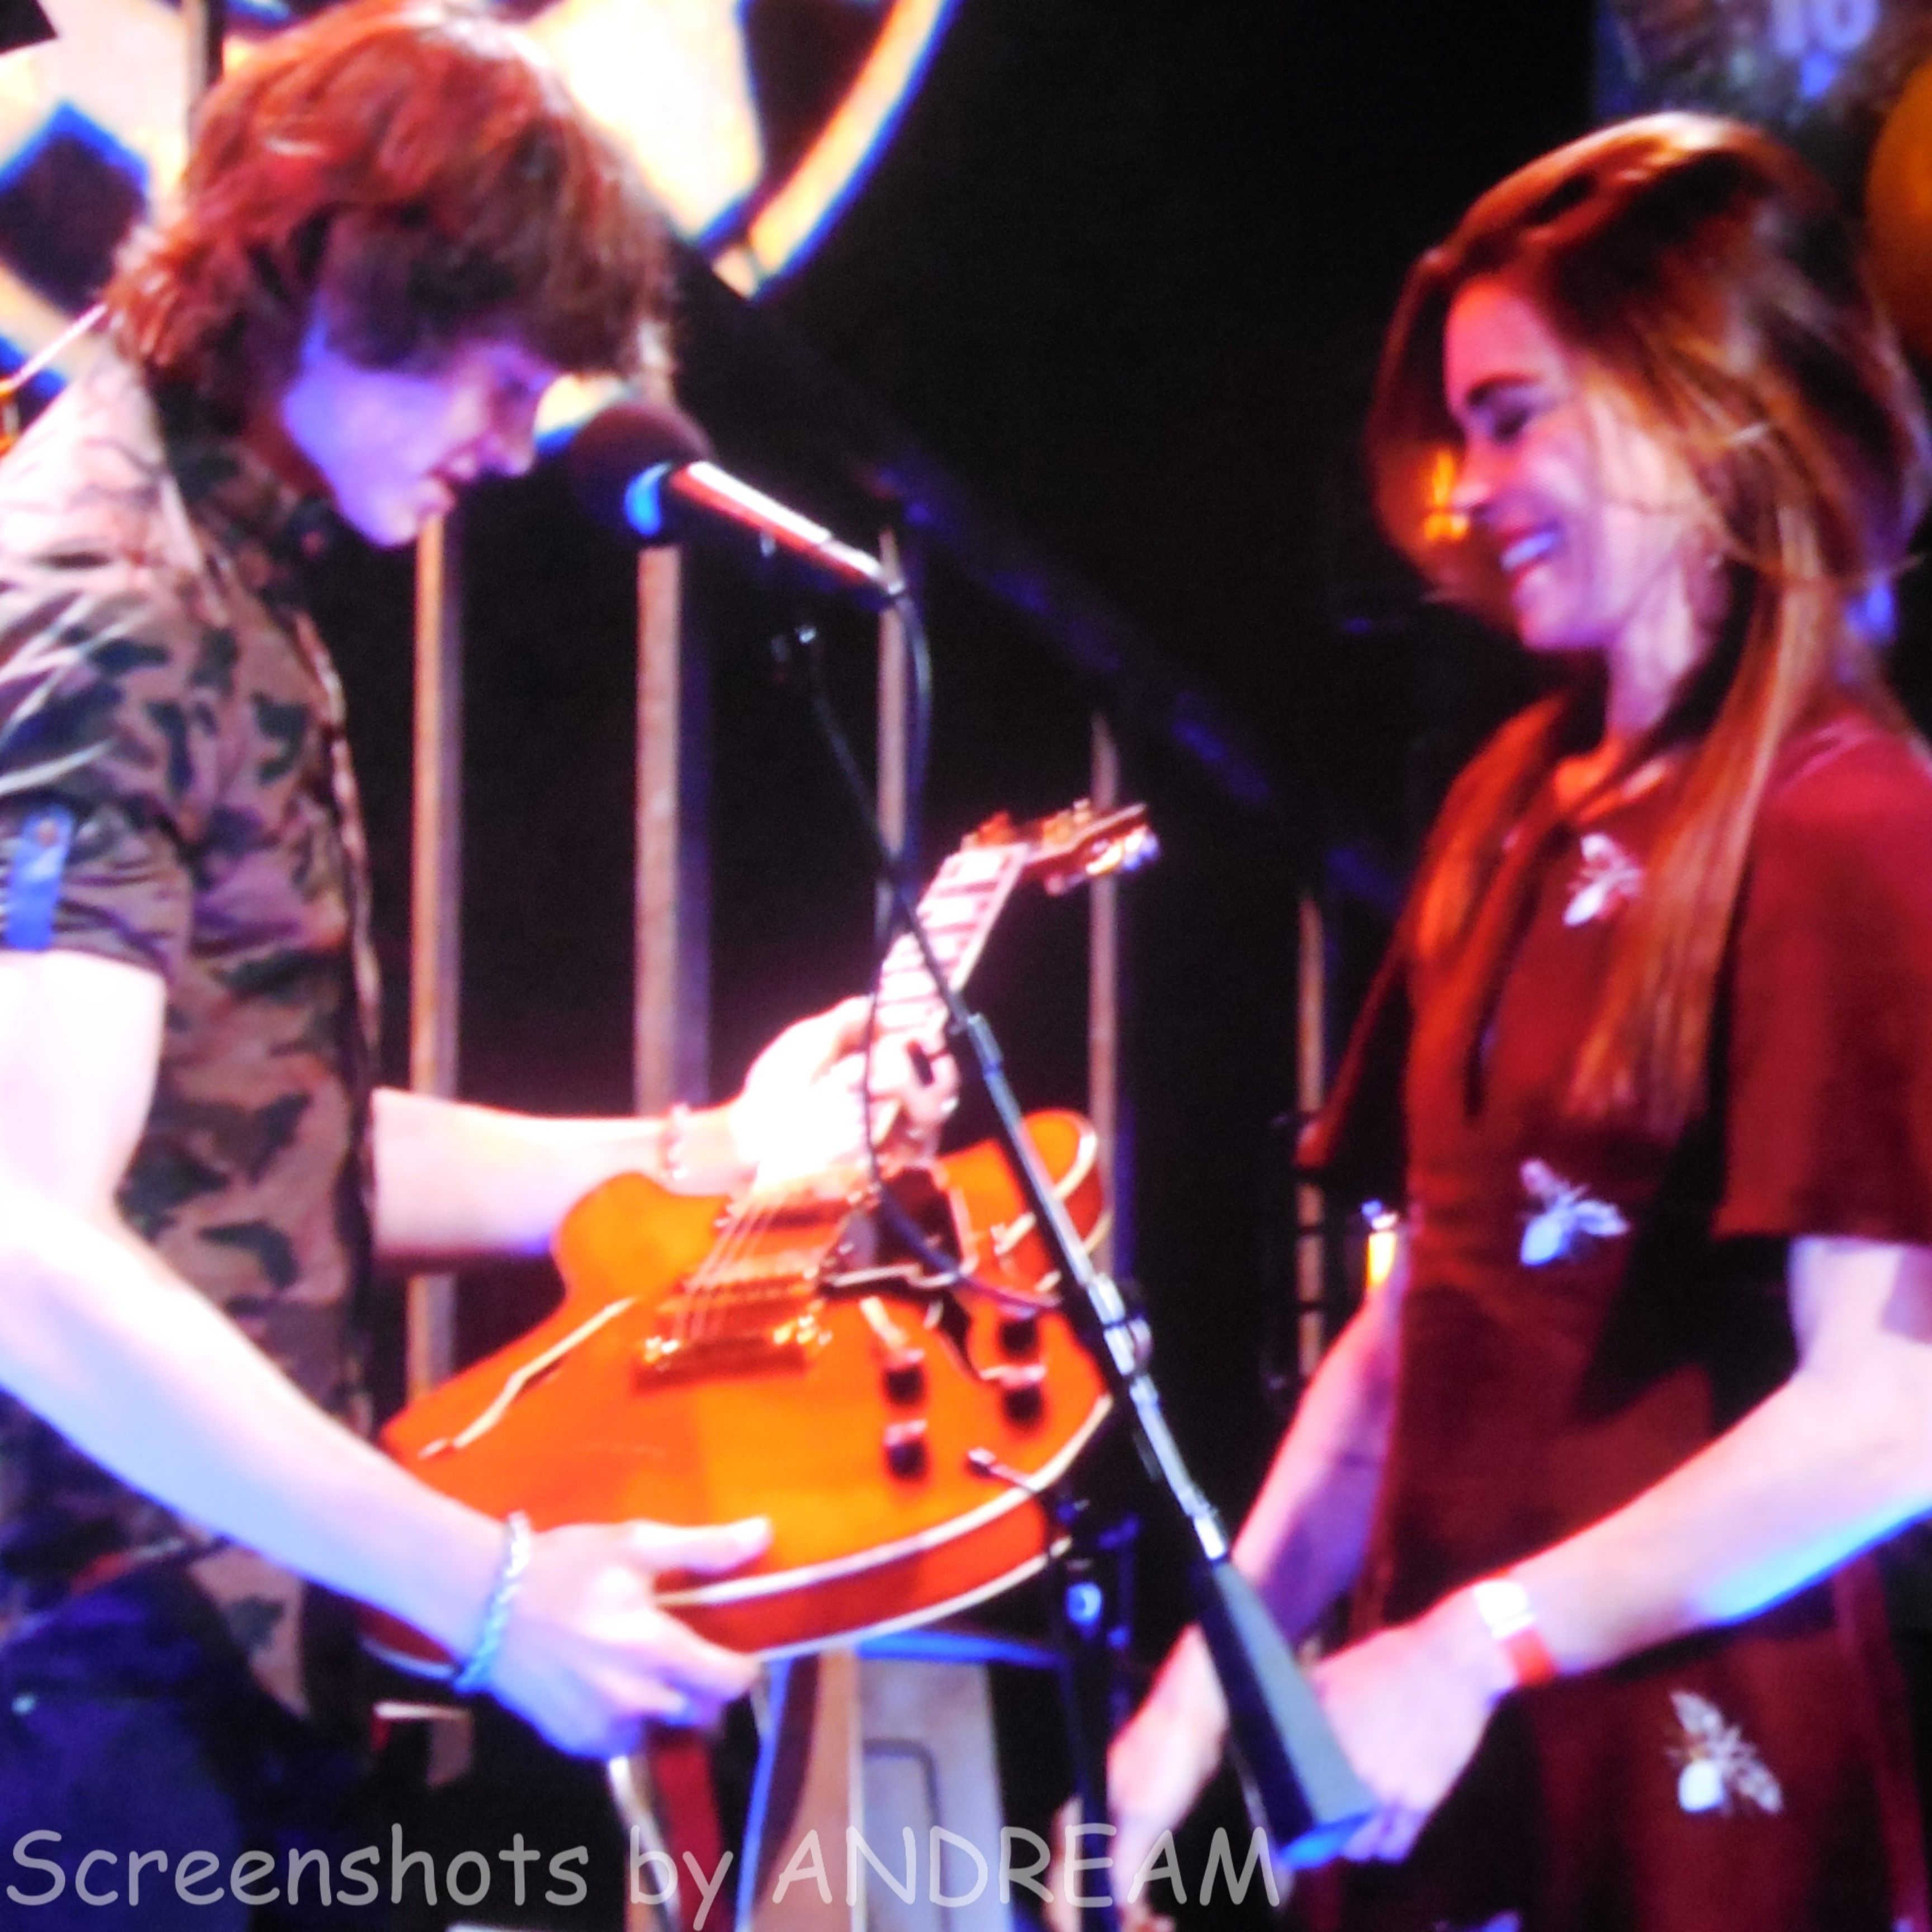 Victoria presents Reed with a new guitar for his birthday!  Reed exclaims it's the exact one he wanted!